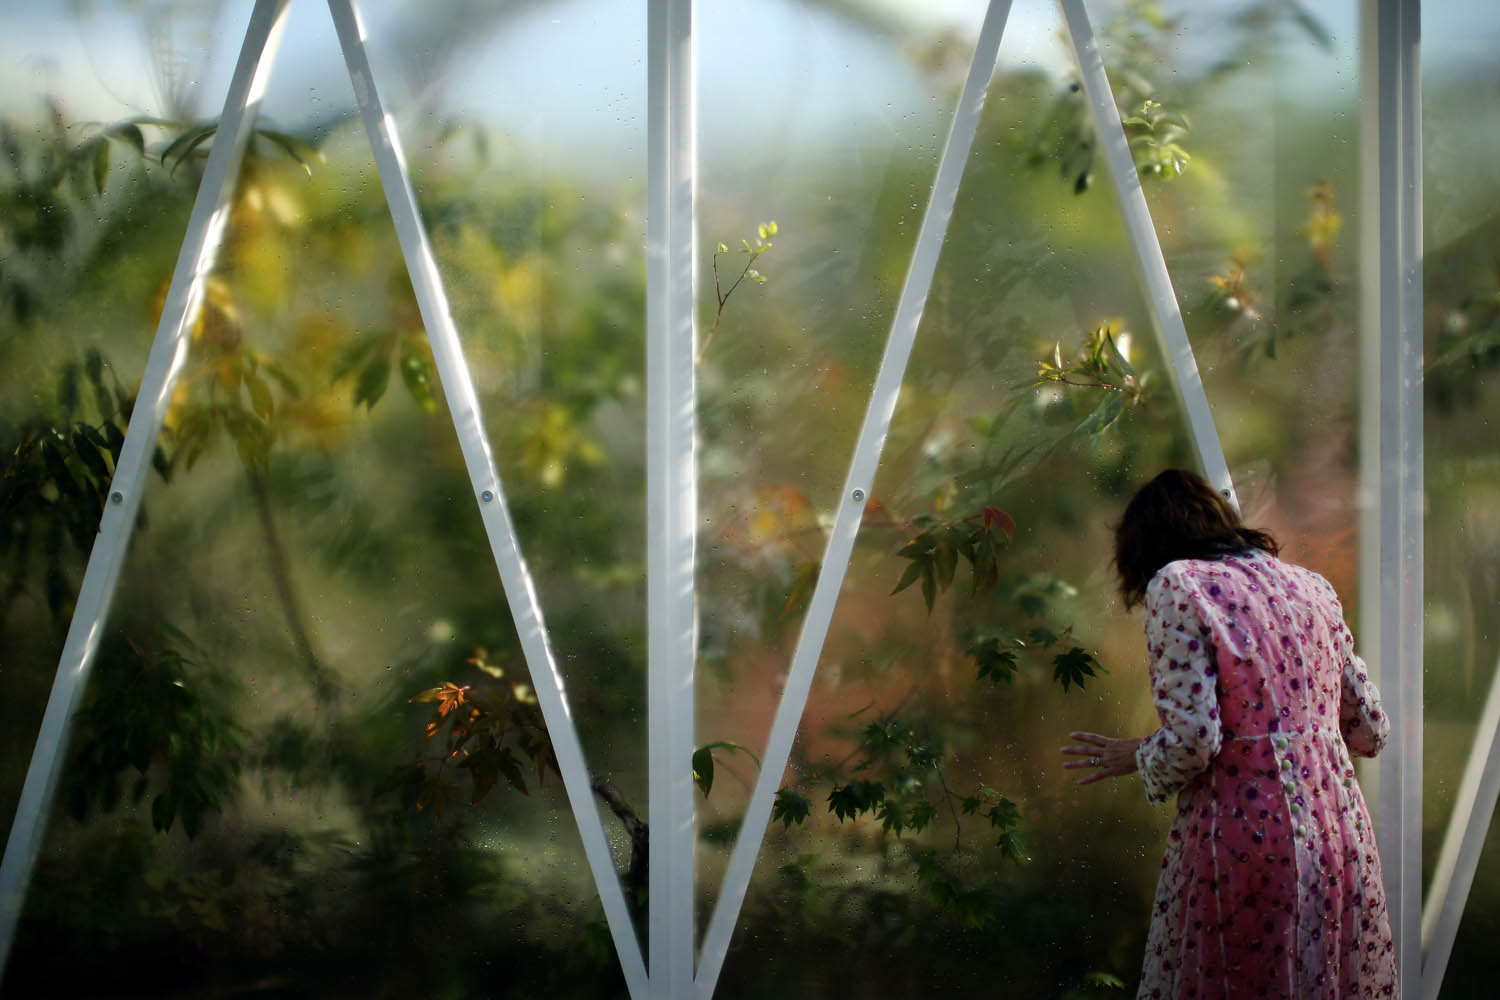 May 19, 2014.  A visitor looks through the glass of a greenhouse on a stand at the 2014 Chelsea Flower Show at Royal Hospital Chelsea in London, England.